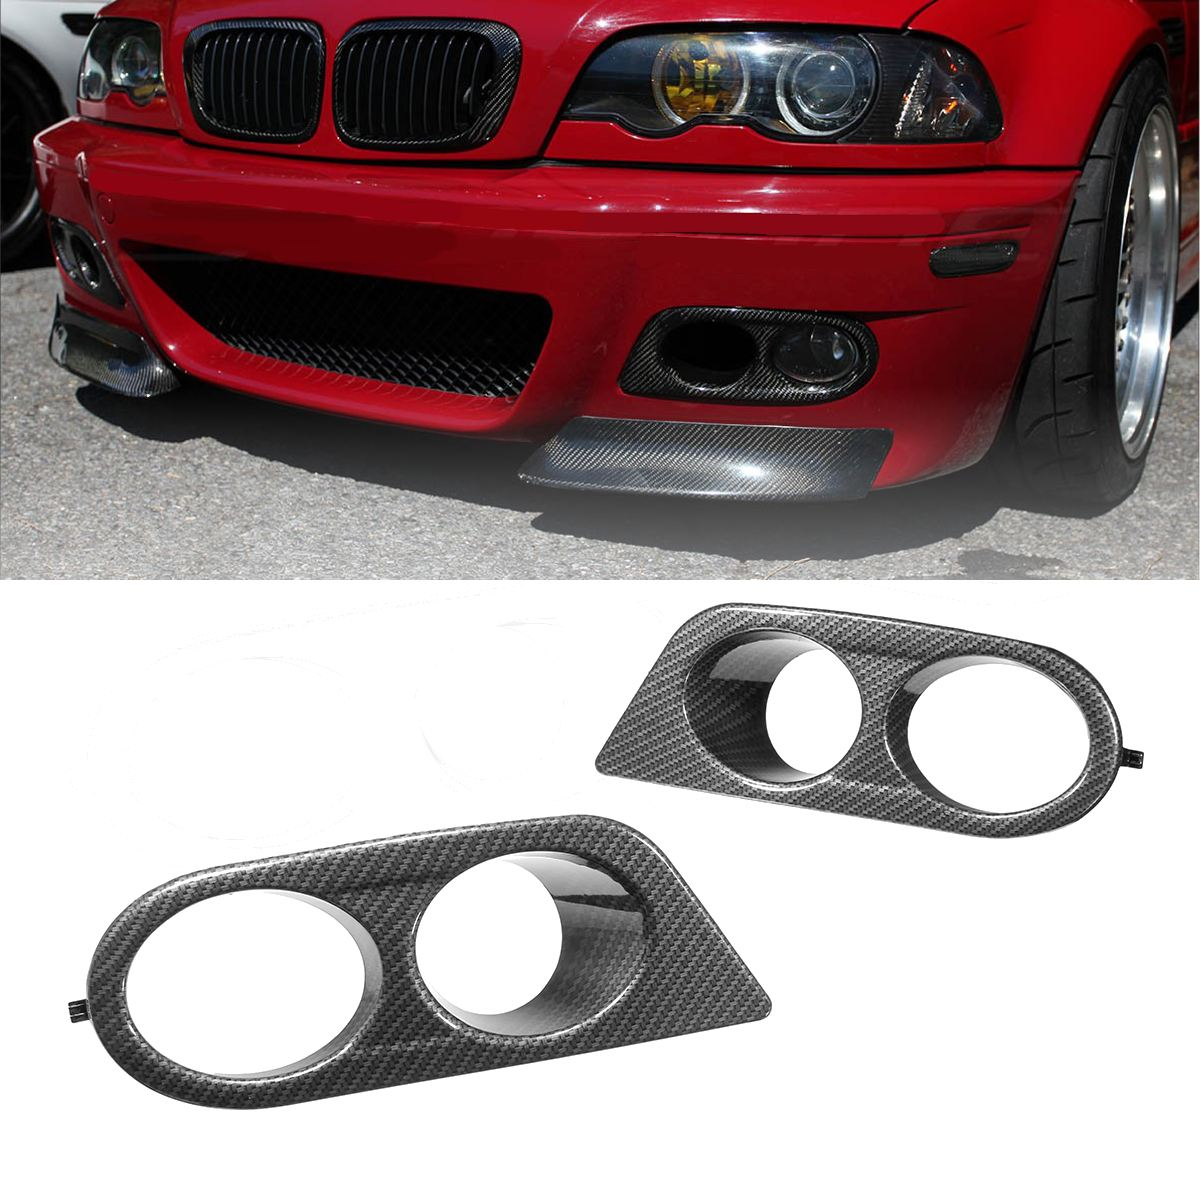 Par Car Fog Light Covers Surround E46 M3 Do Duto de Ar Para BMW 2001-2006 Fibra De Carbono Preto Brilhante